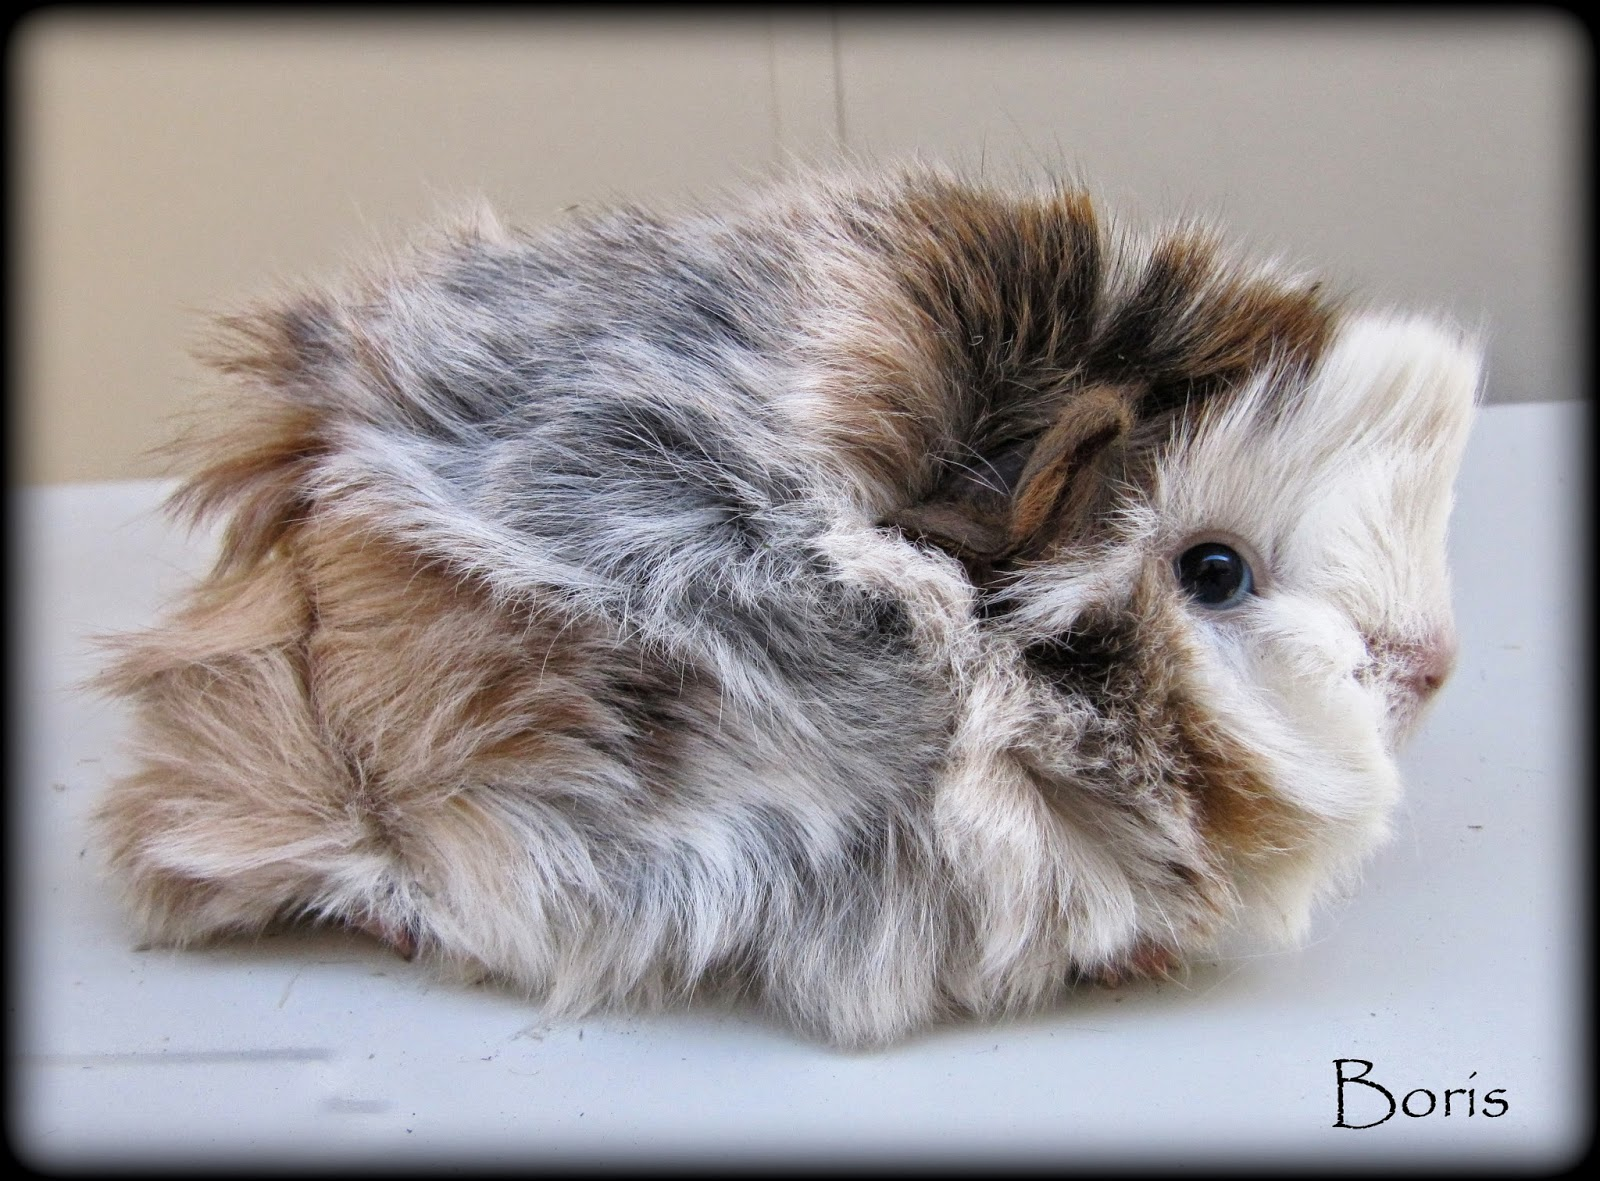 All Things Guinea Pig: Some Very fluffy new arrivals!